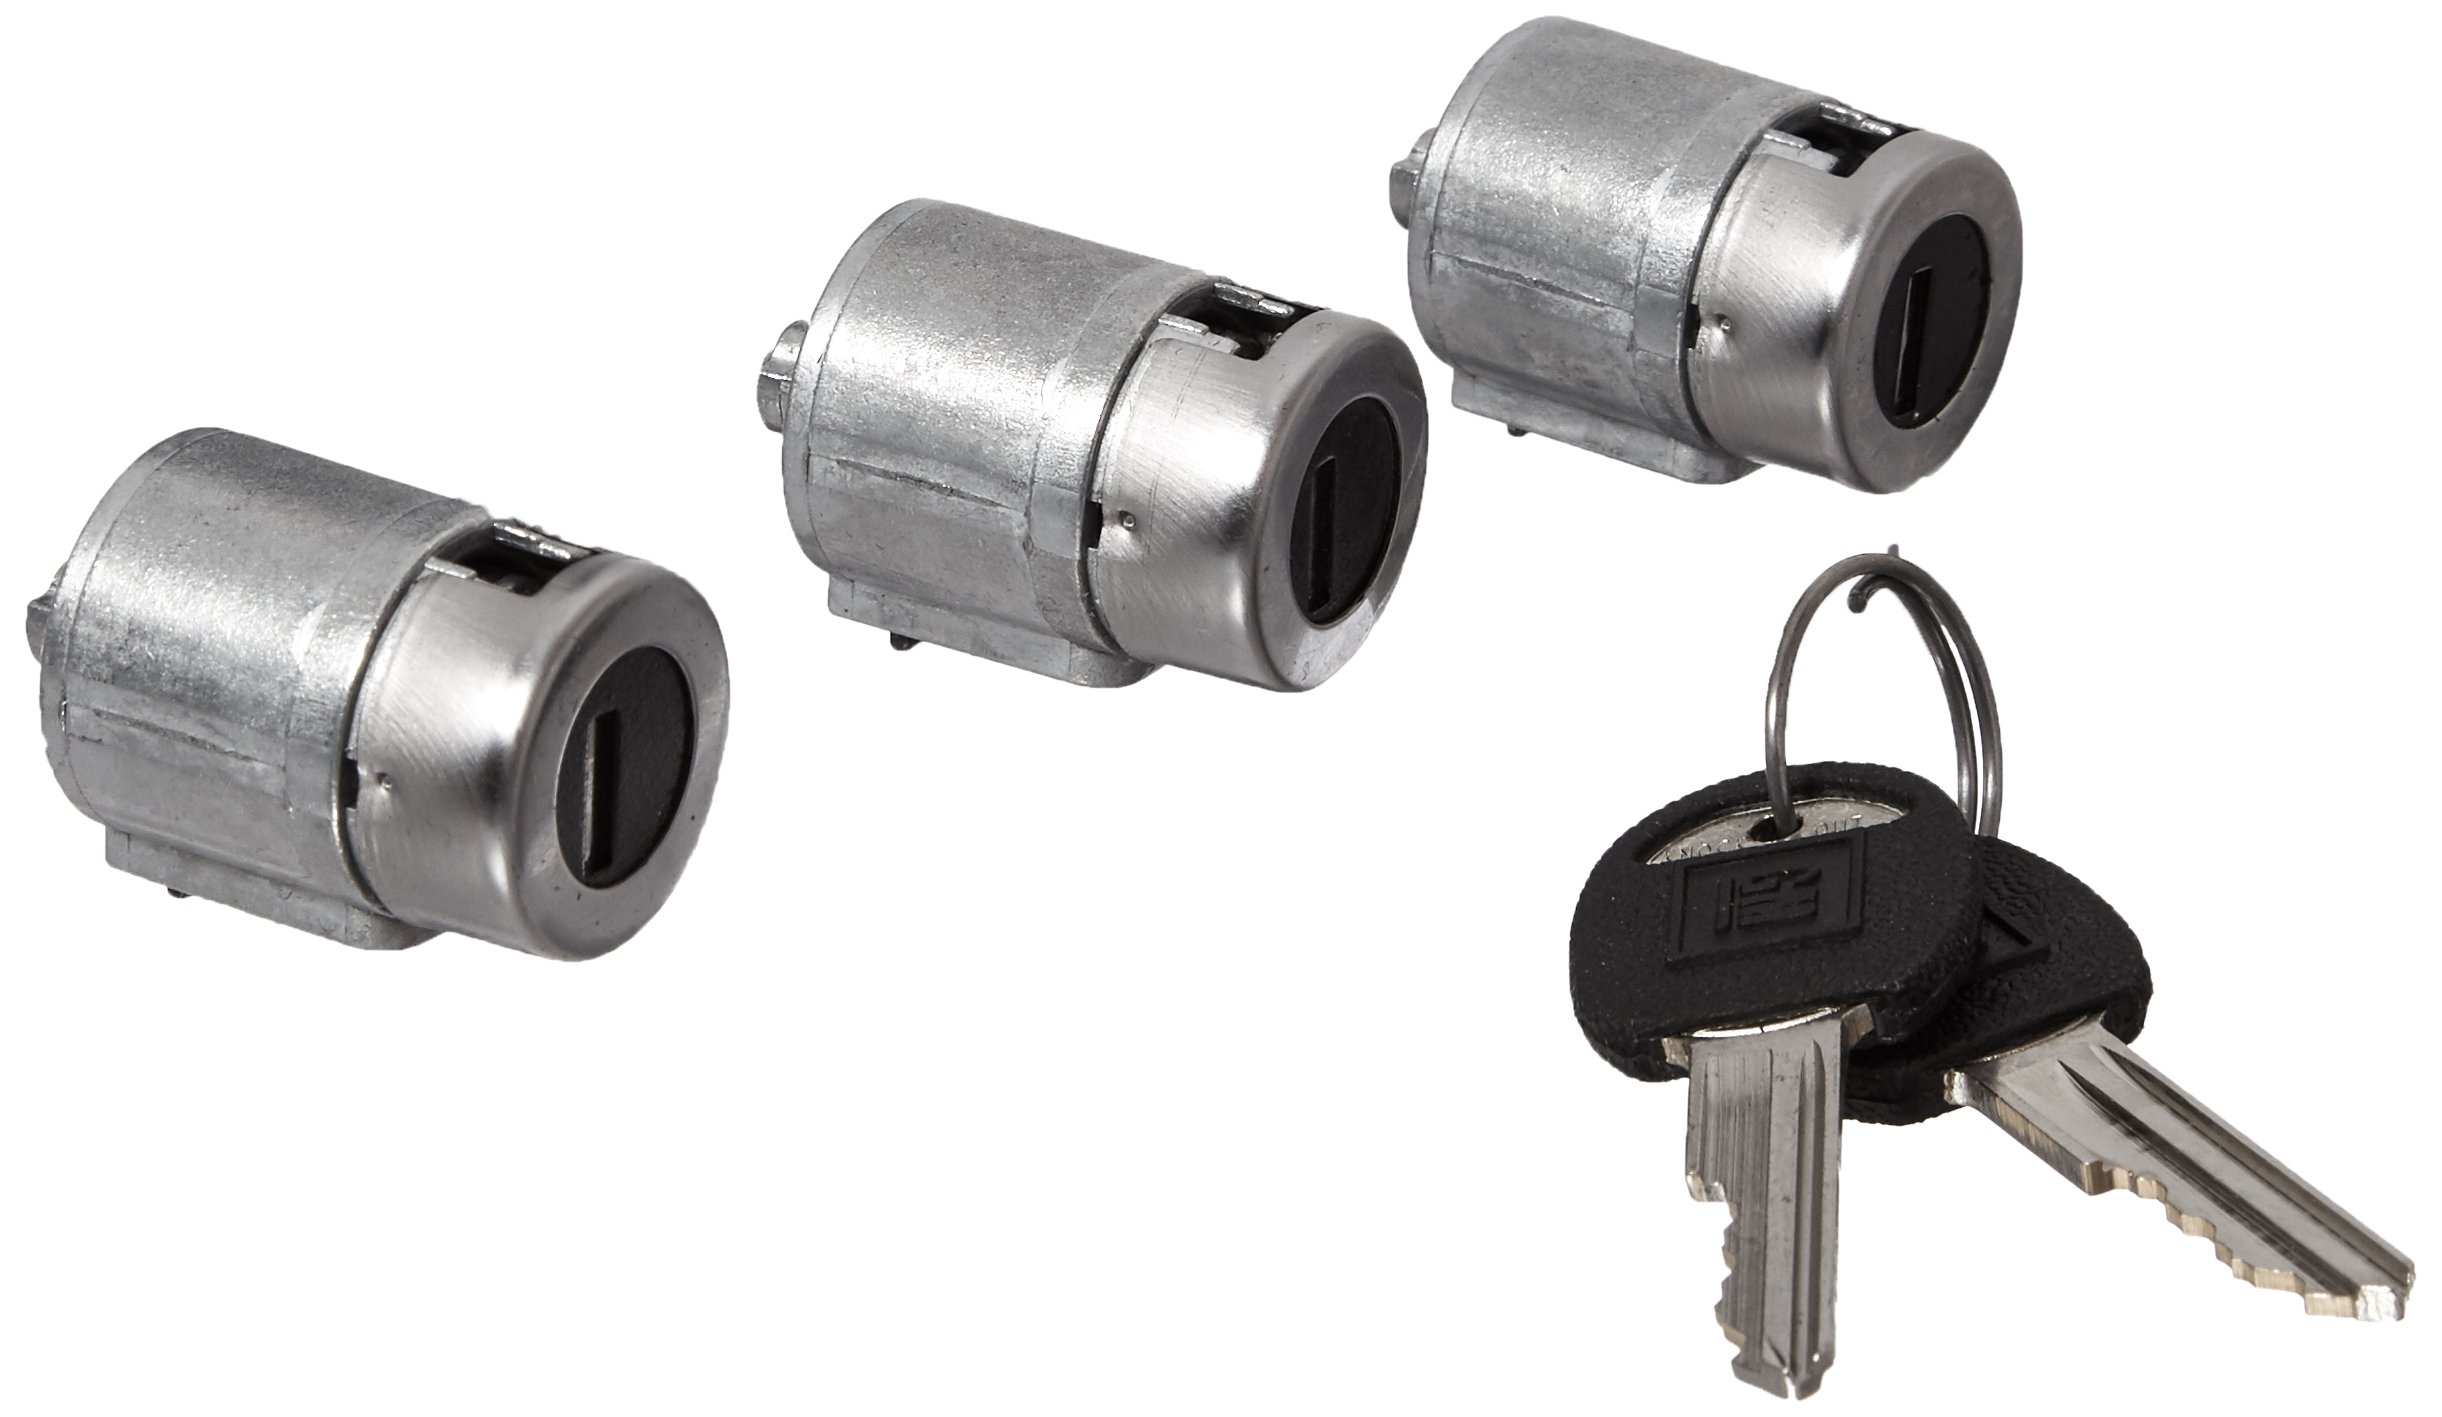 Standard Motor Products DL161 Door Lock Kit by Standard Motor Products